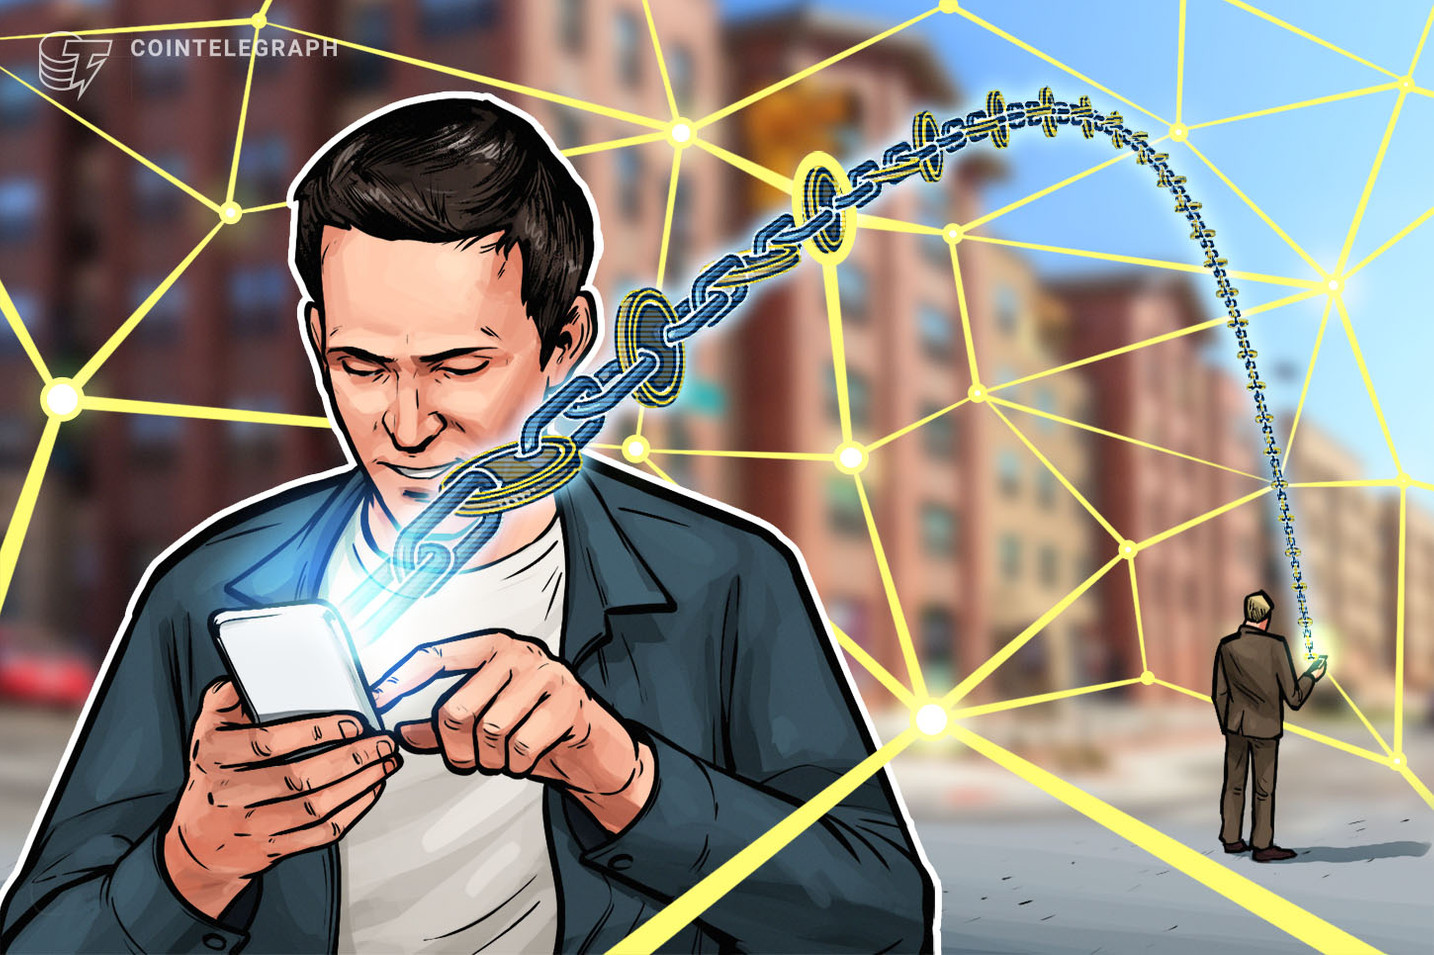 South Korea: Messaging Giant Kakao, Stablecoin Terra Partner for Blockchain Payment System